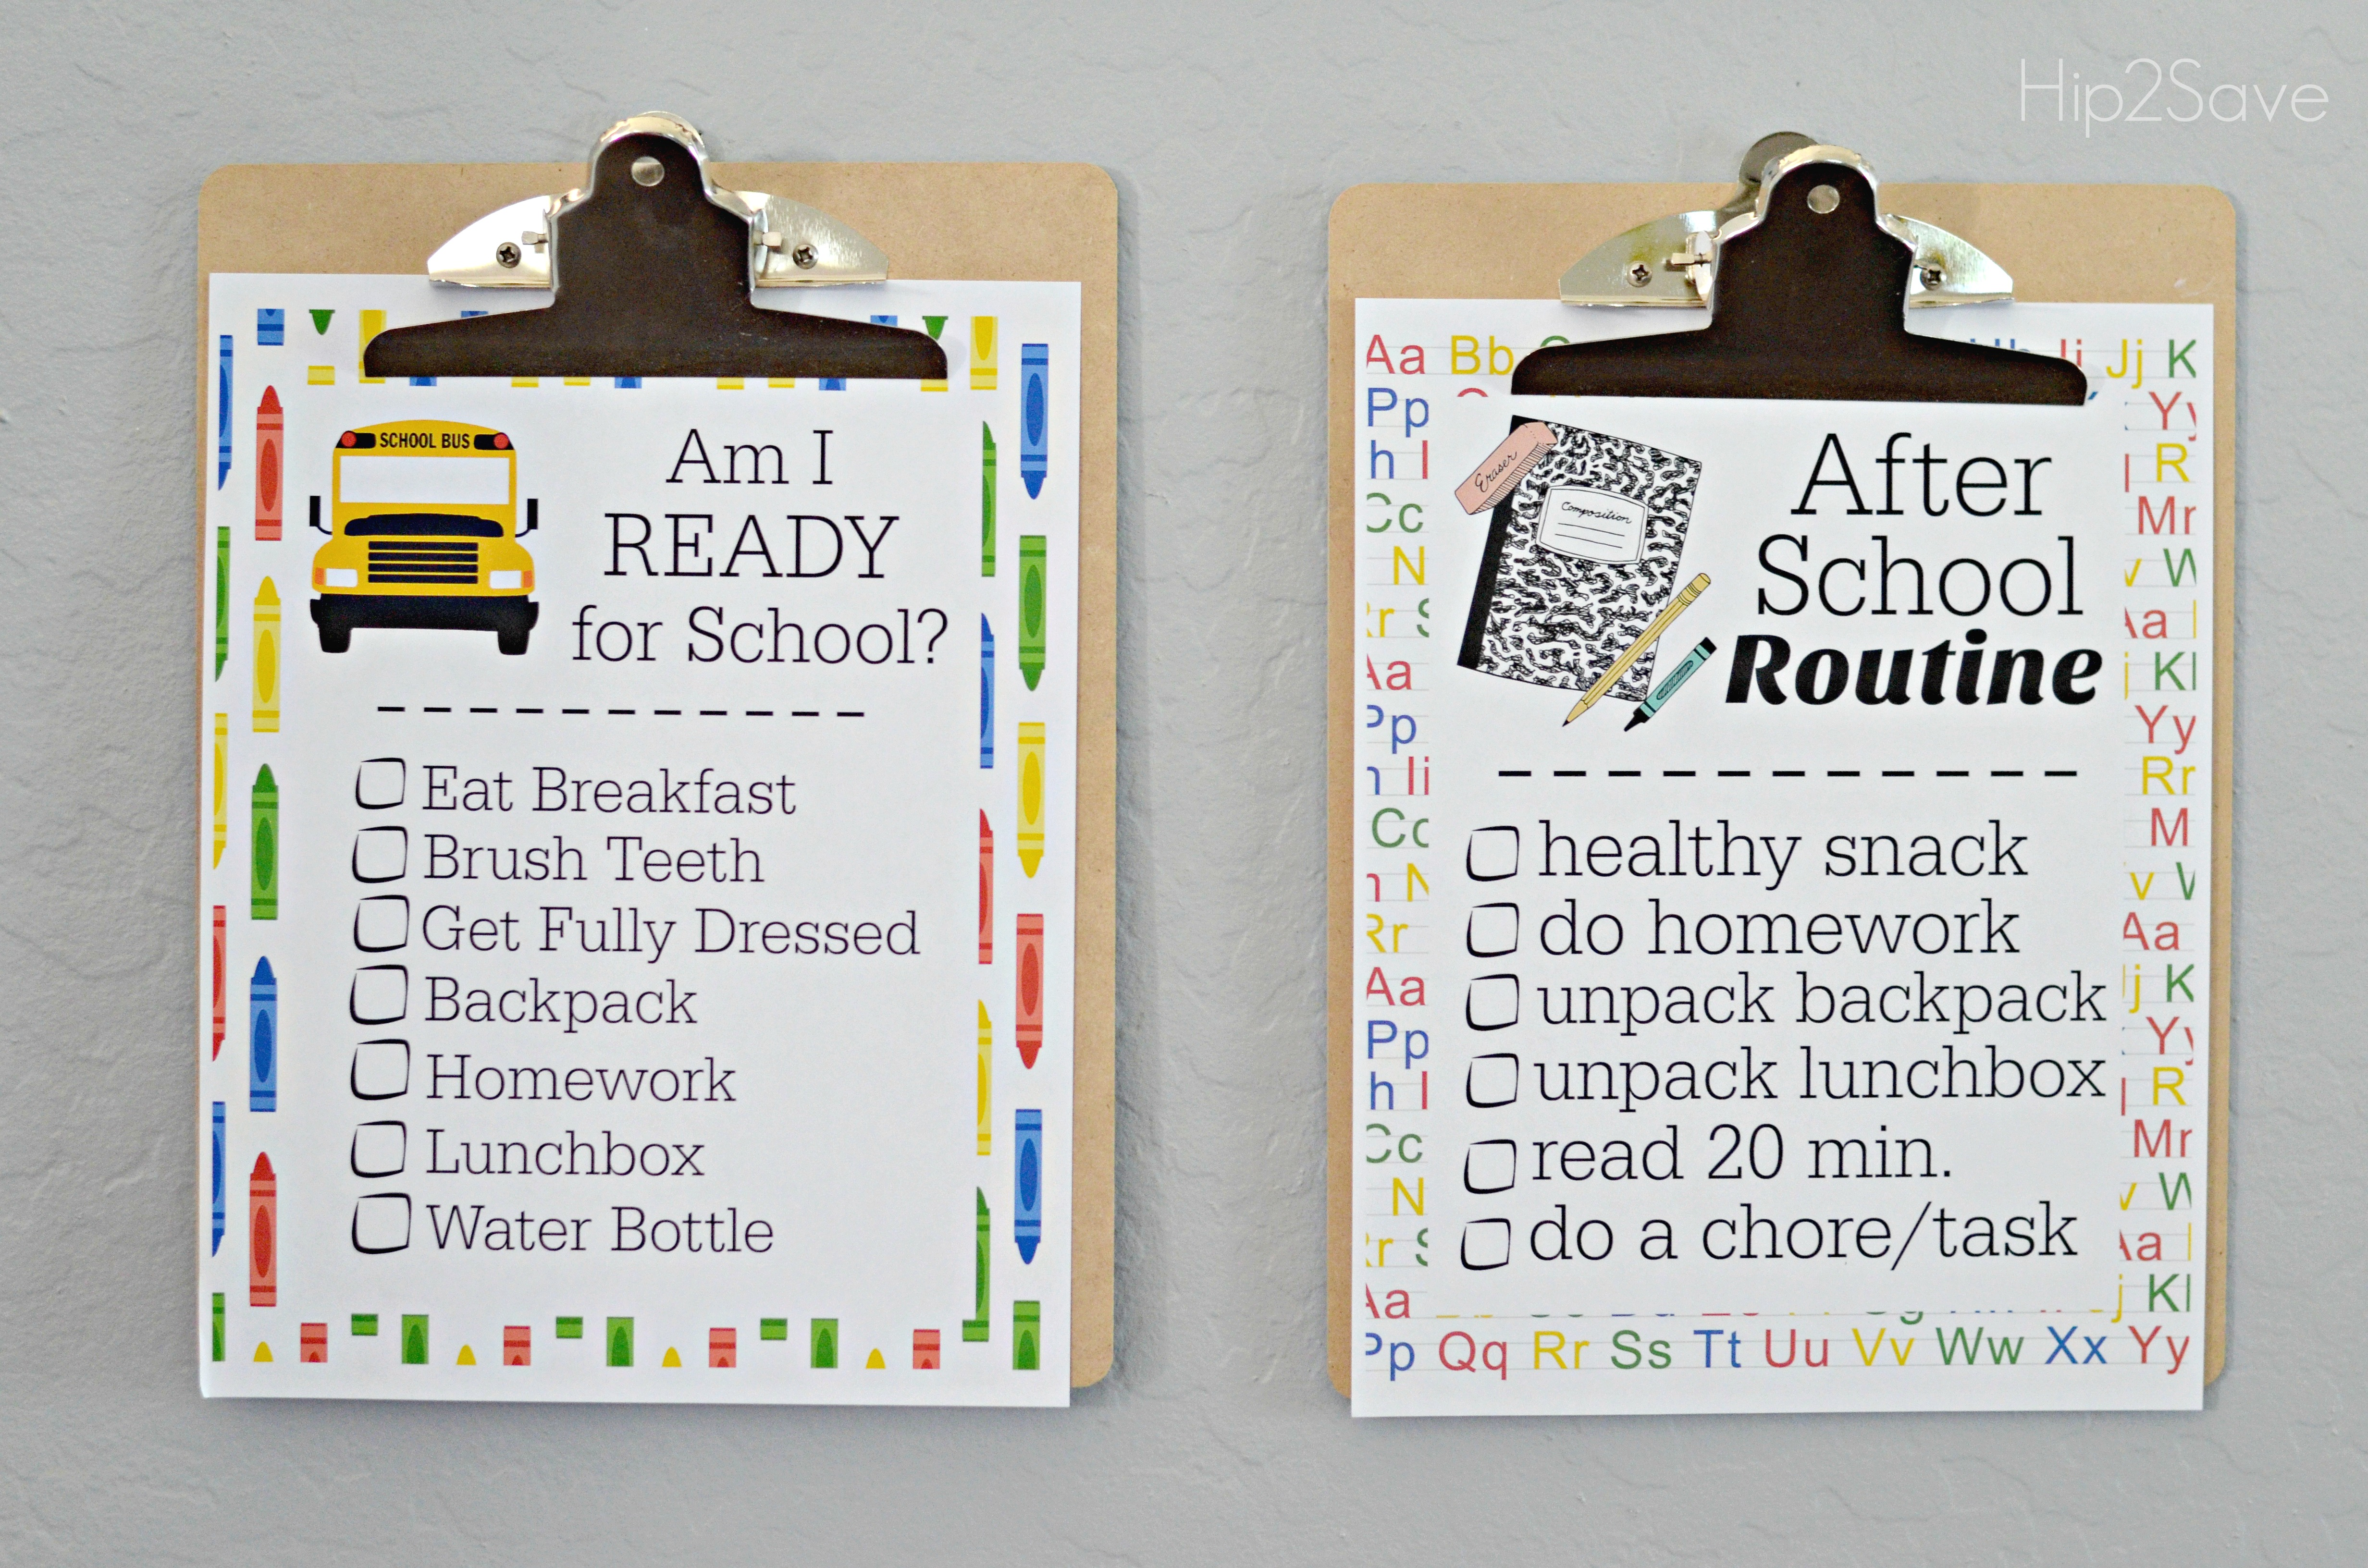 Win back-to-school bundles! Student check list of things to do.